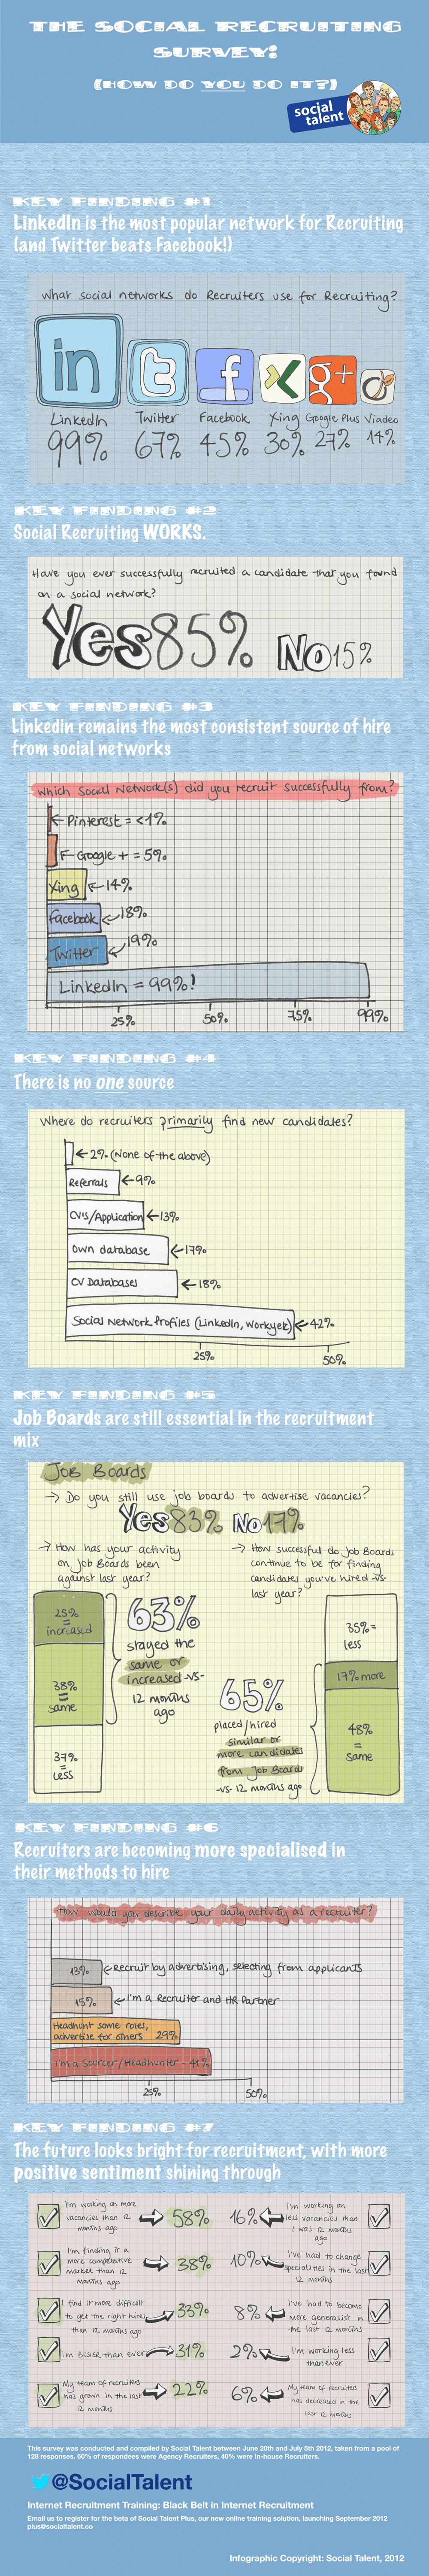 Reverse Engineer Online Recruiter Strategies & Get A Job [Infographic]